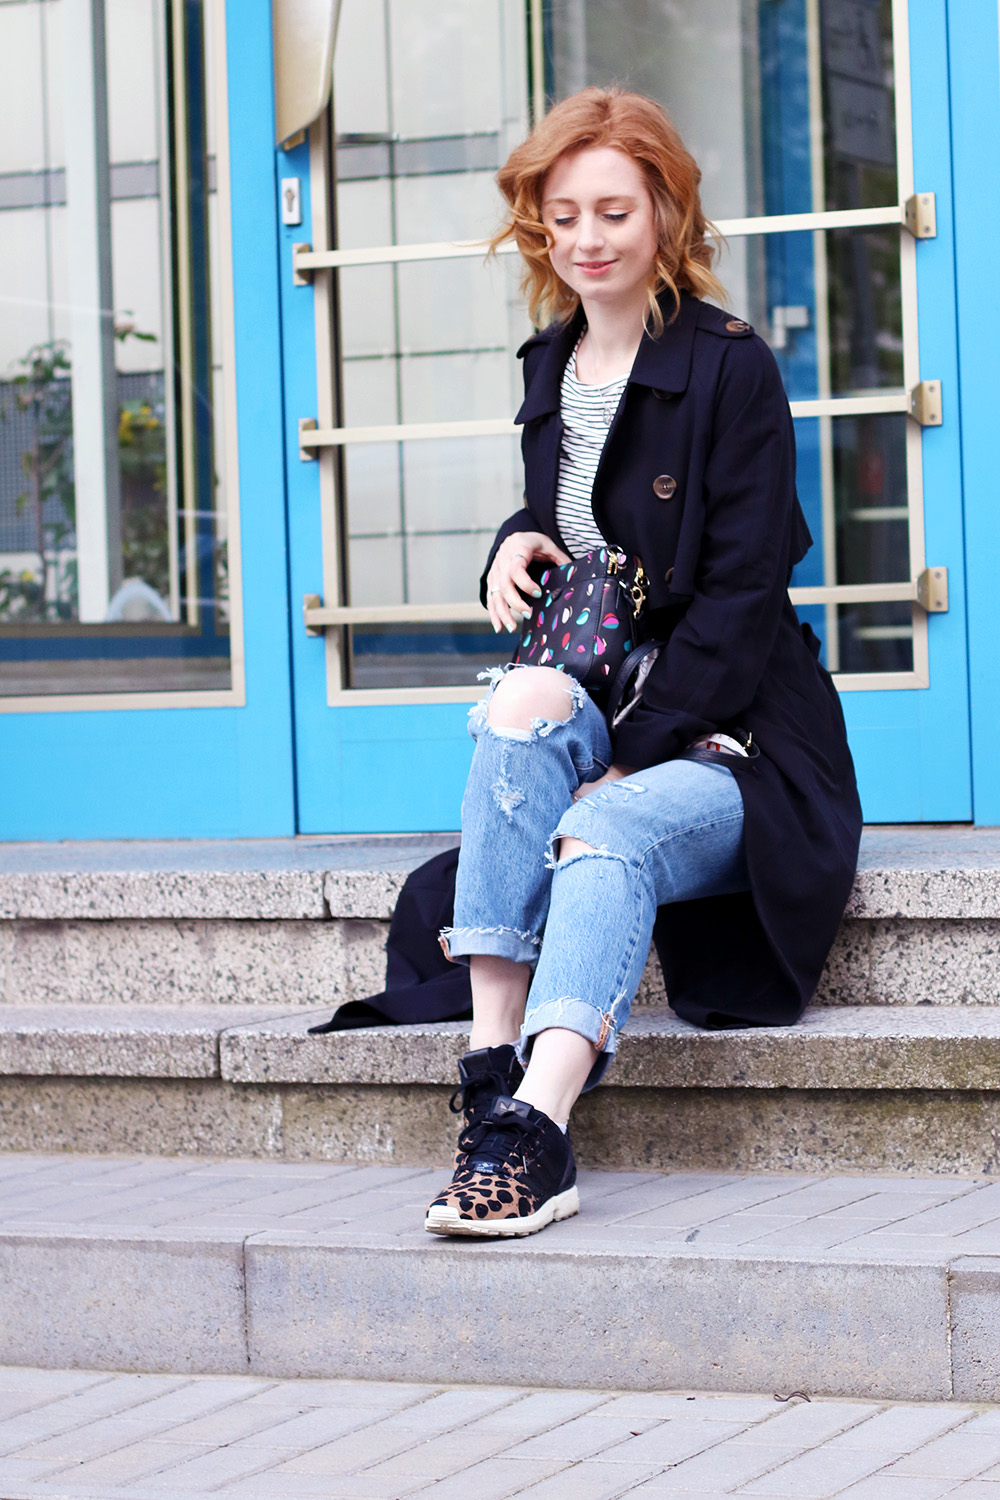 Tasche, Fossil, Ripped Jeans stylen, Levi's 501 ct, Jeans, adidas, Sneaker, Trenchcoat, Trend, Frühling, Streifen, blonde Haare, helle Haut, Influencer, Deutschland, Berlin, Streetstyle, Mode Blog, Modeblog, Advance Your Style, advanceyourstyle